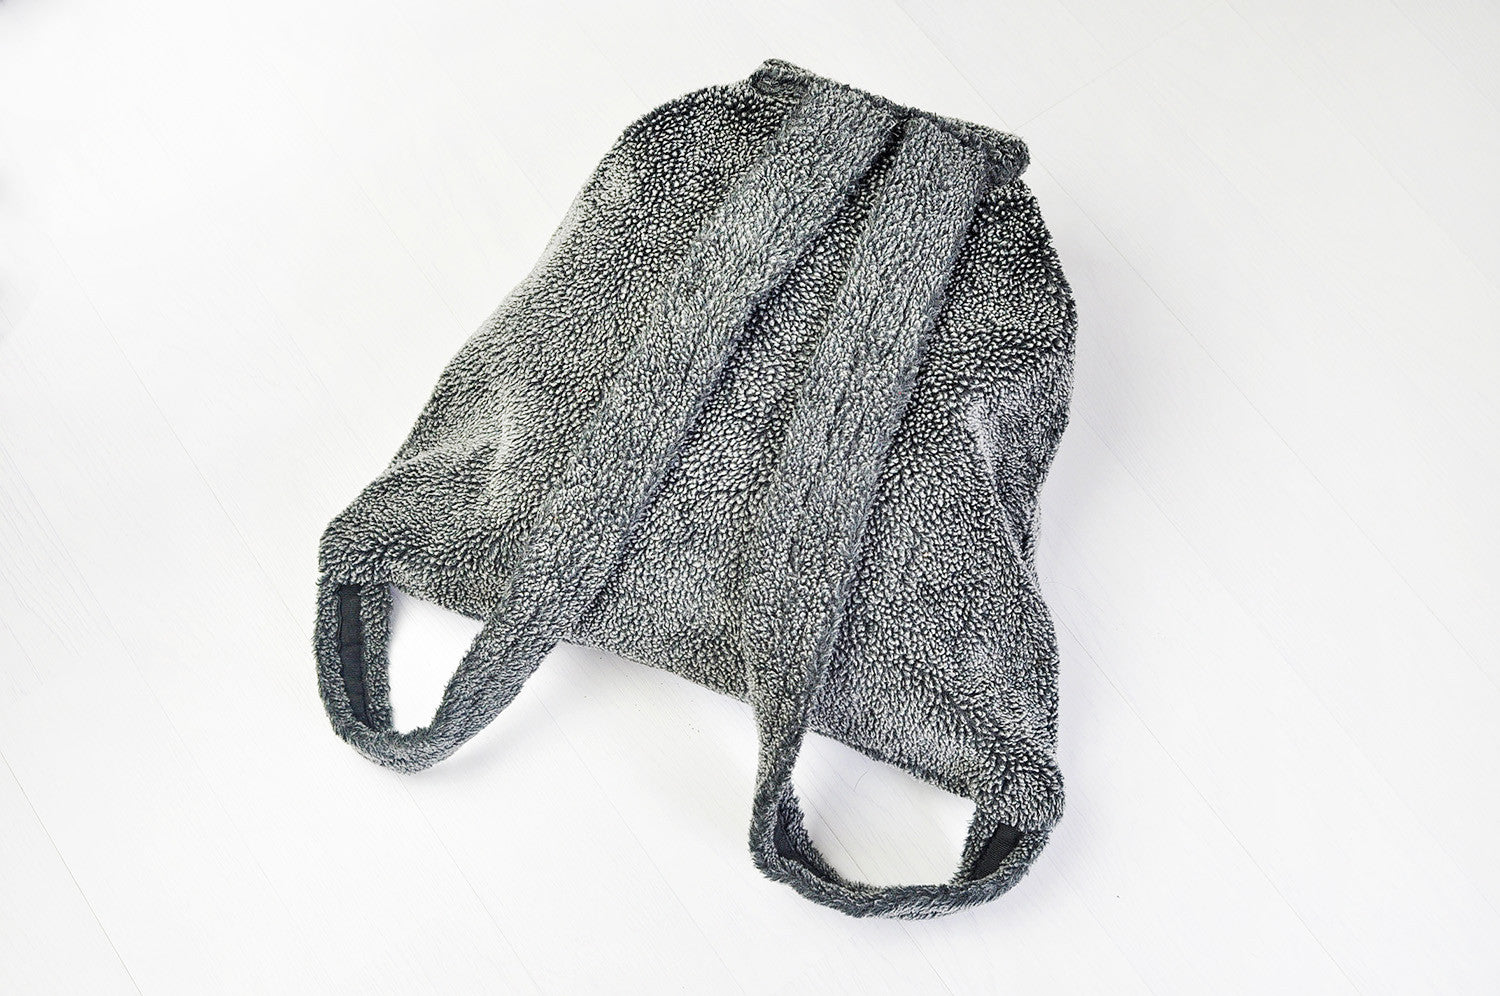 Vintage Super Soft Fur-like Grey Backpack Ruck Sack Bag